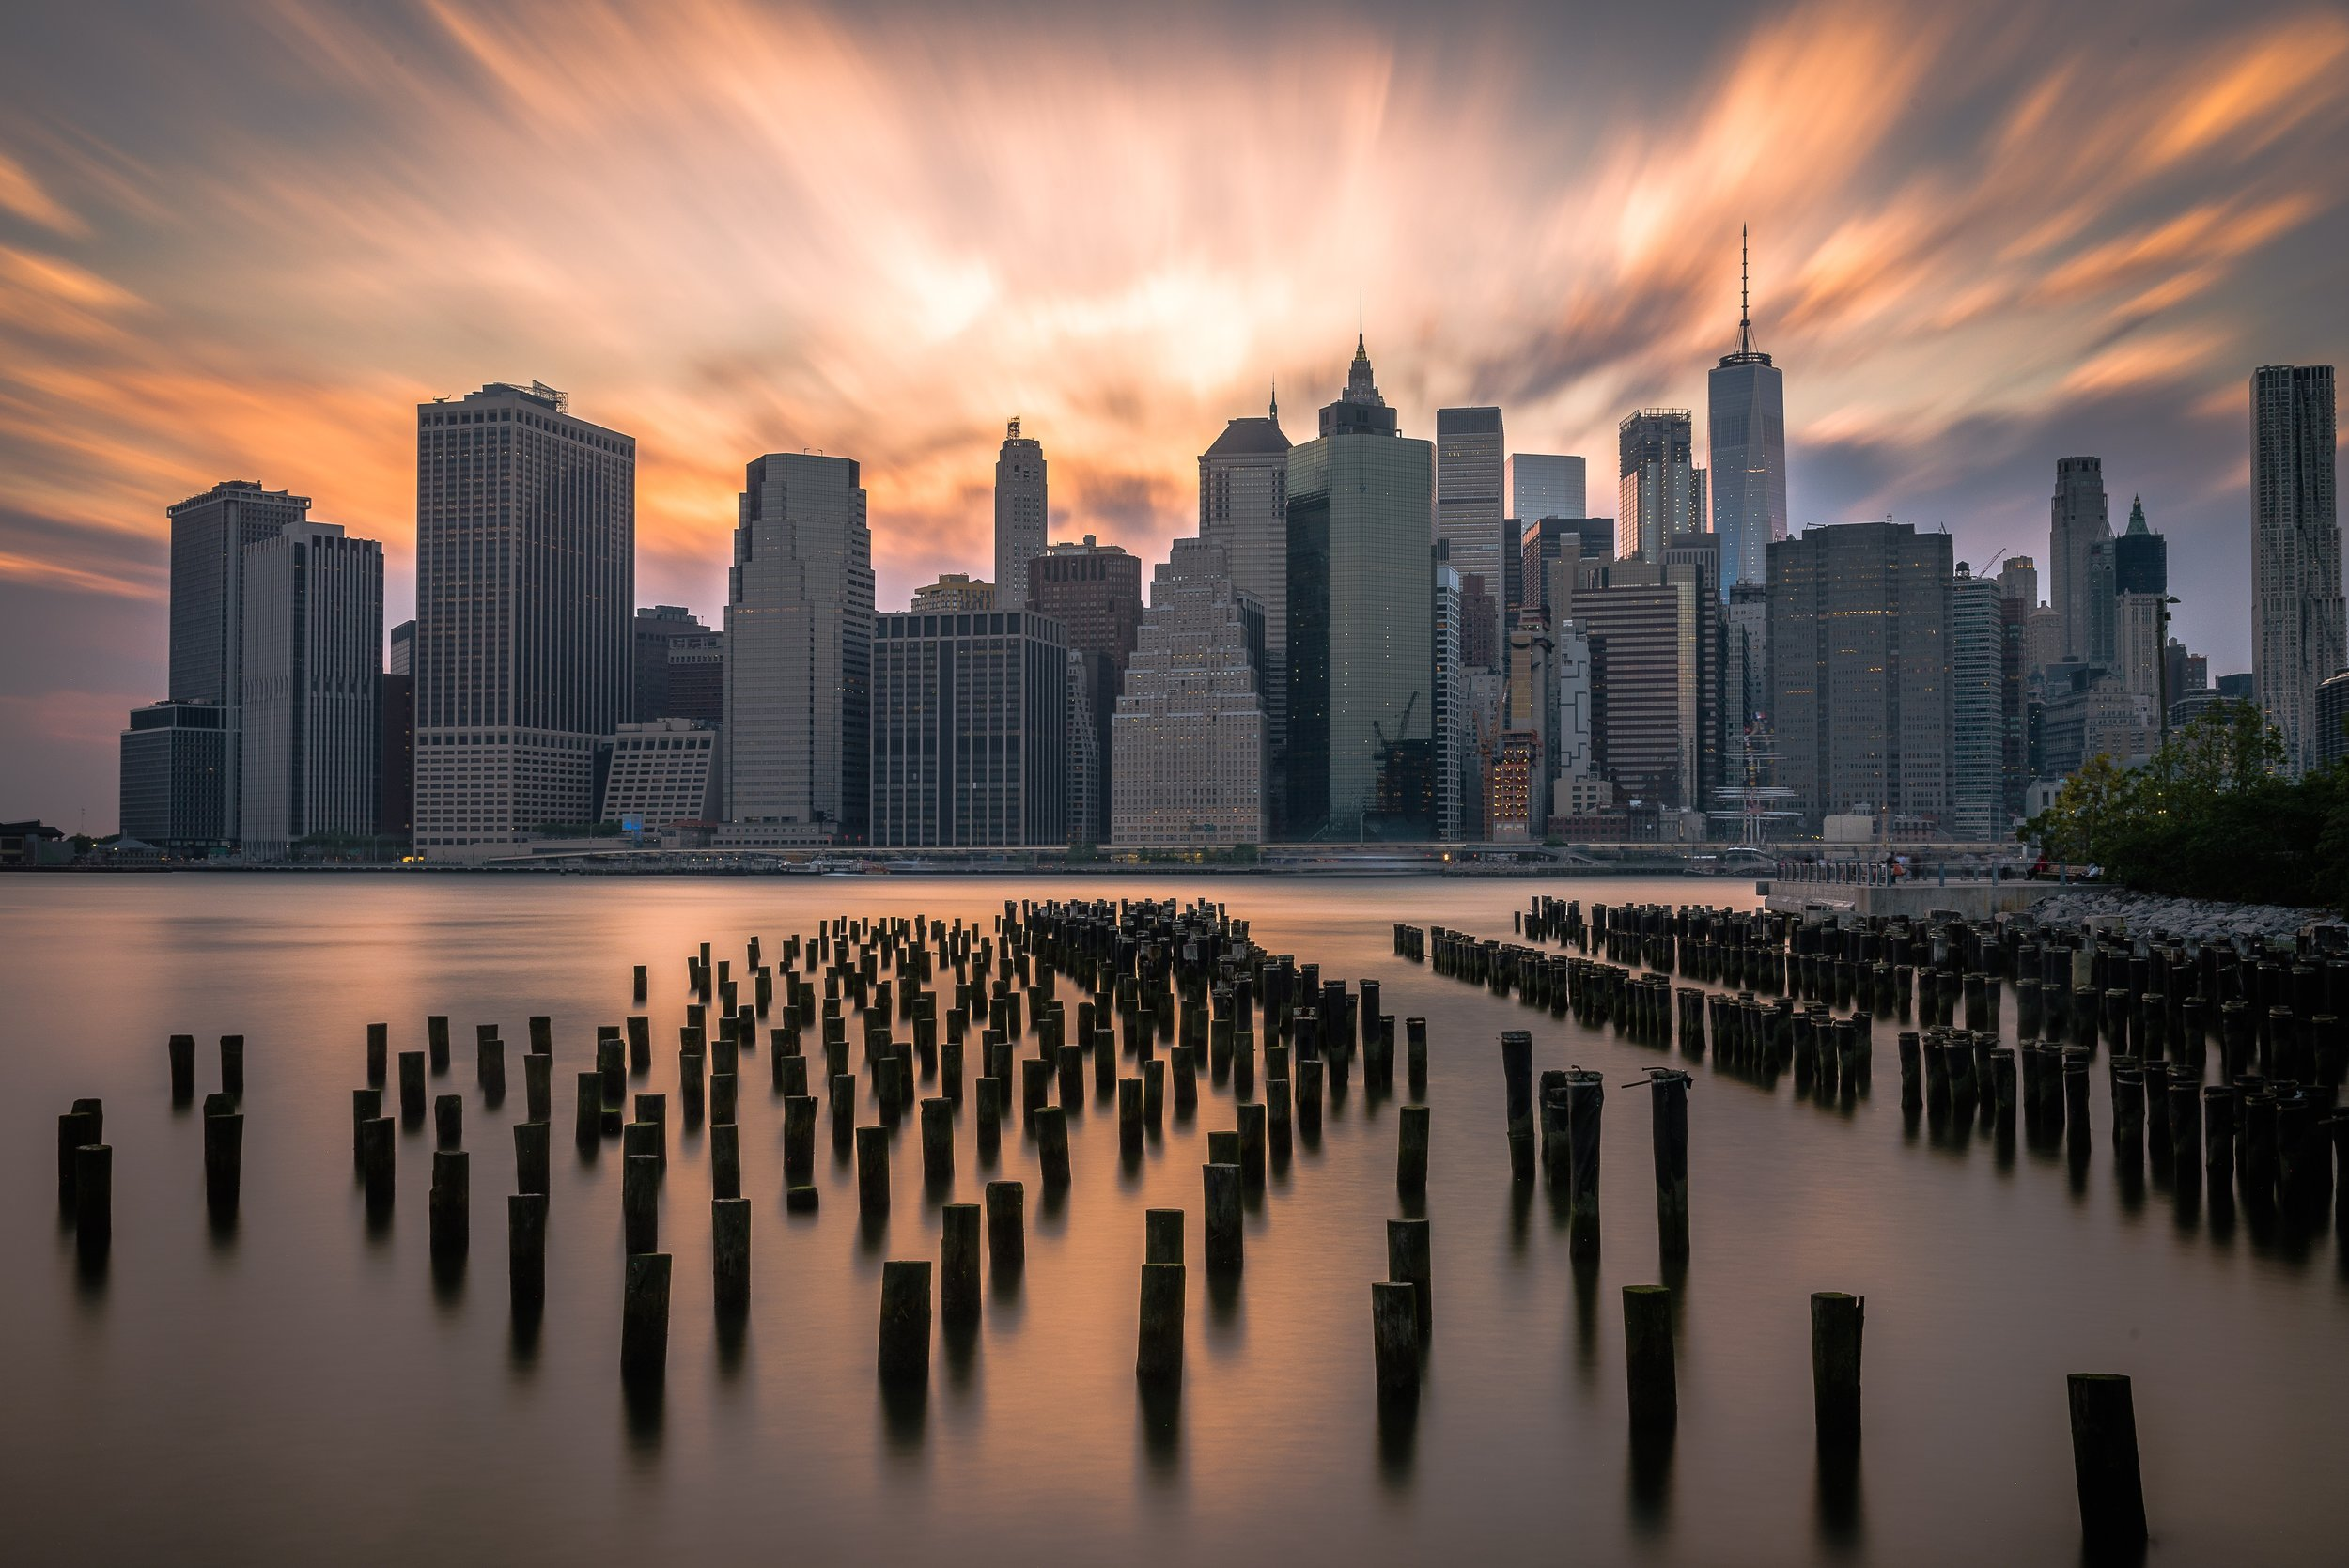 how to create long exposure in photography